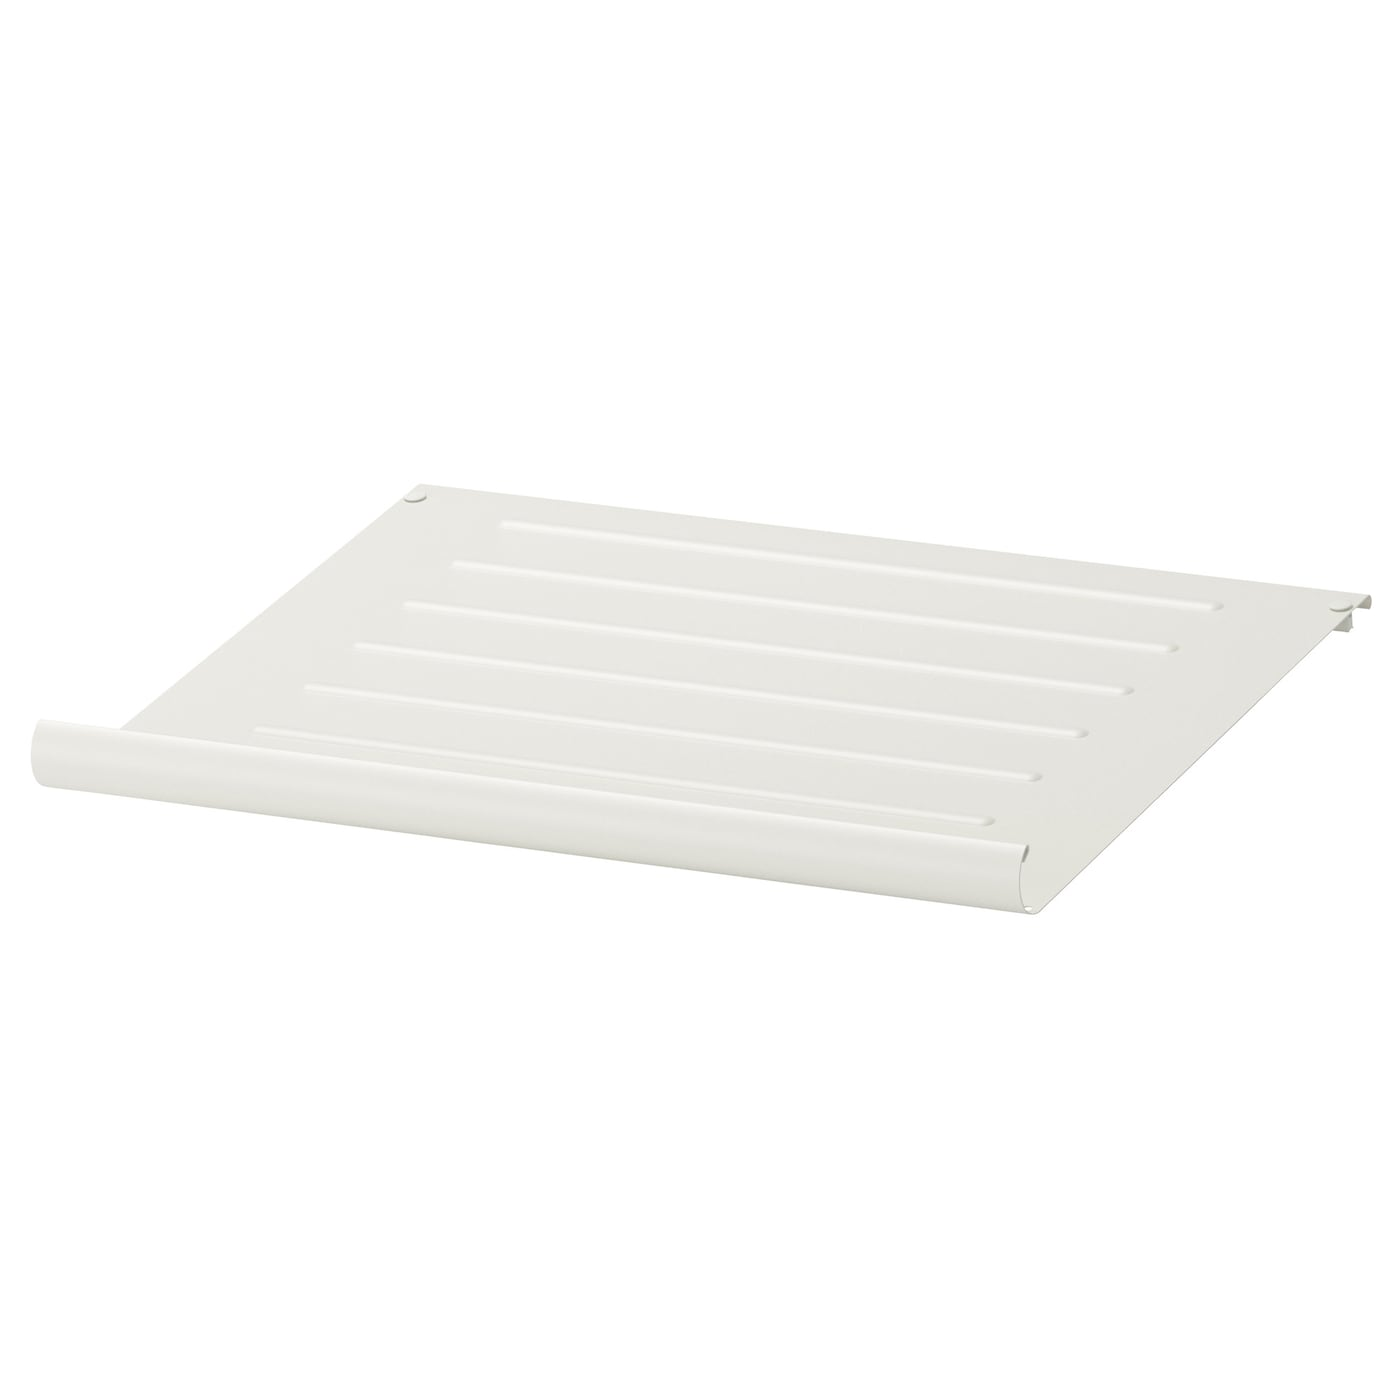 Komplement shoe shelf white 50x35 cm ikea for Ikea complementi